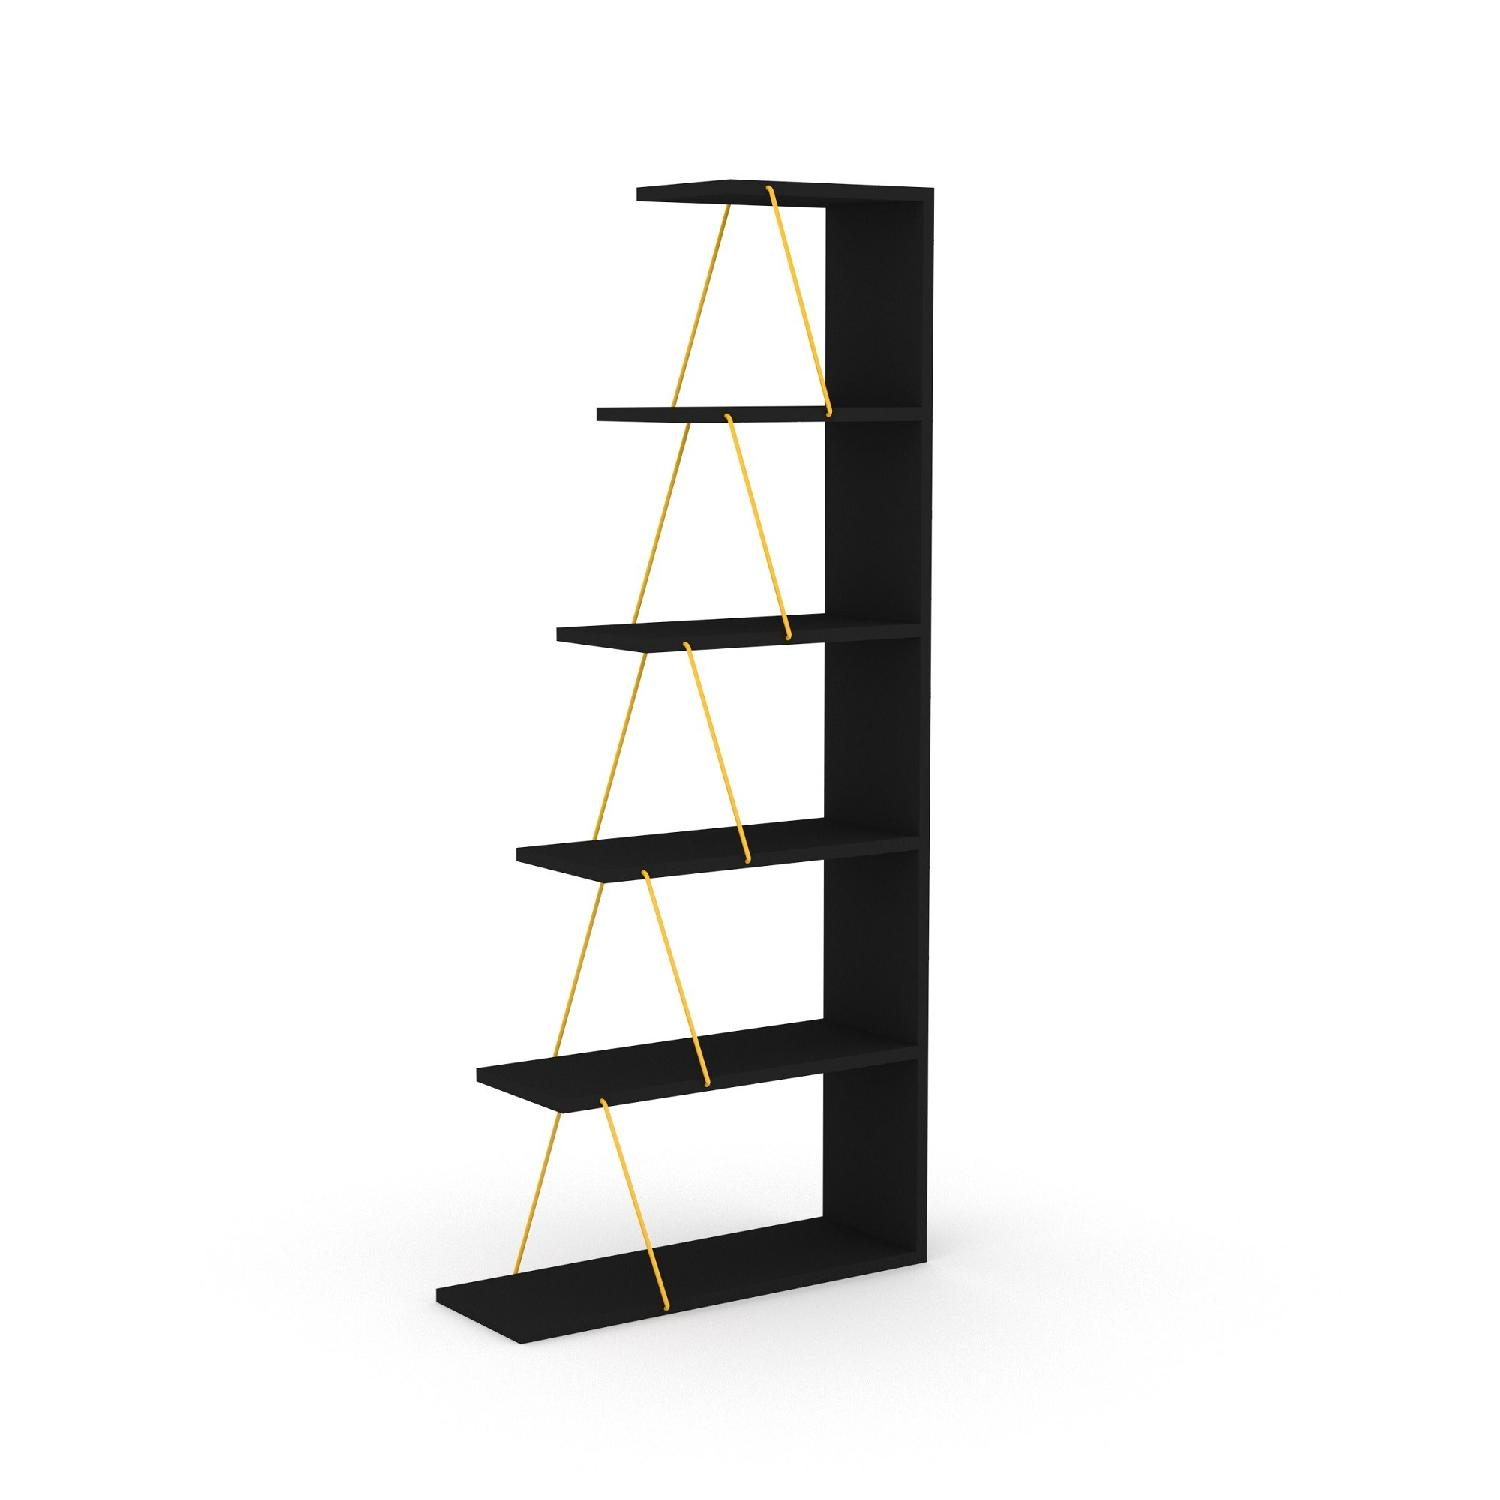 Tamada Trading Orderly Bookshelf in Black & Yellow